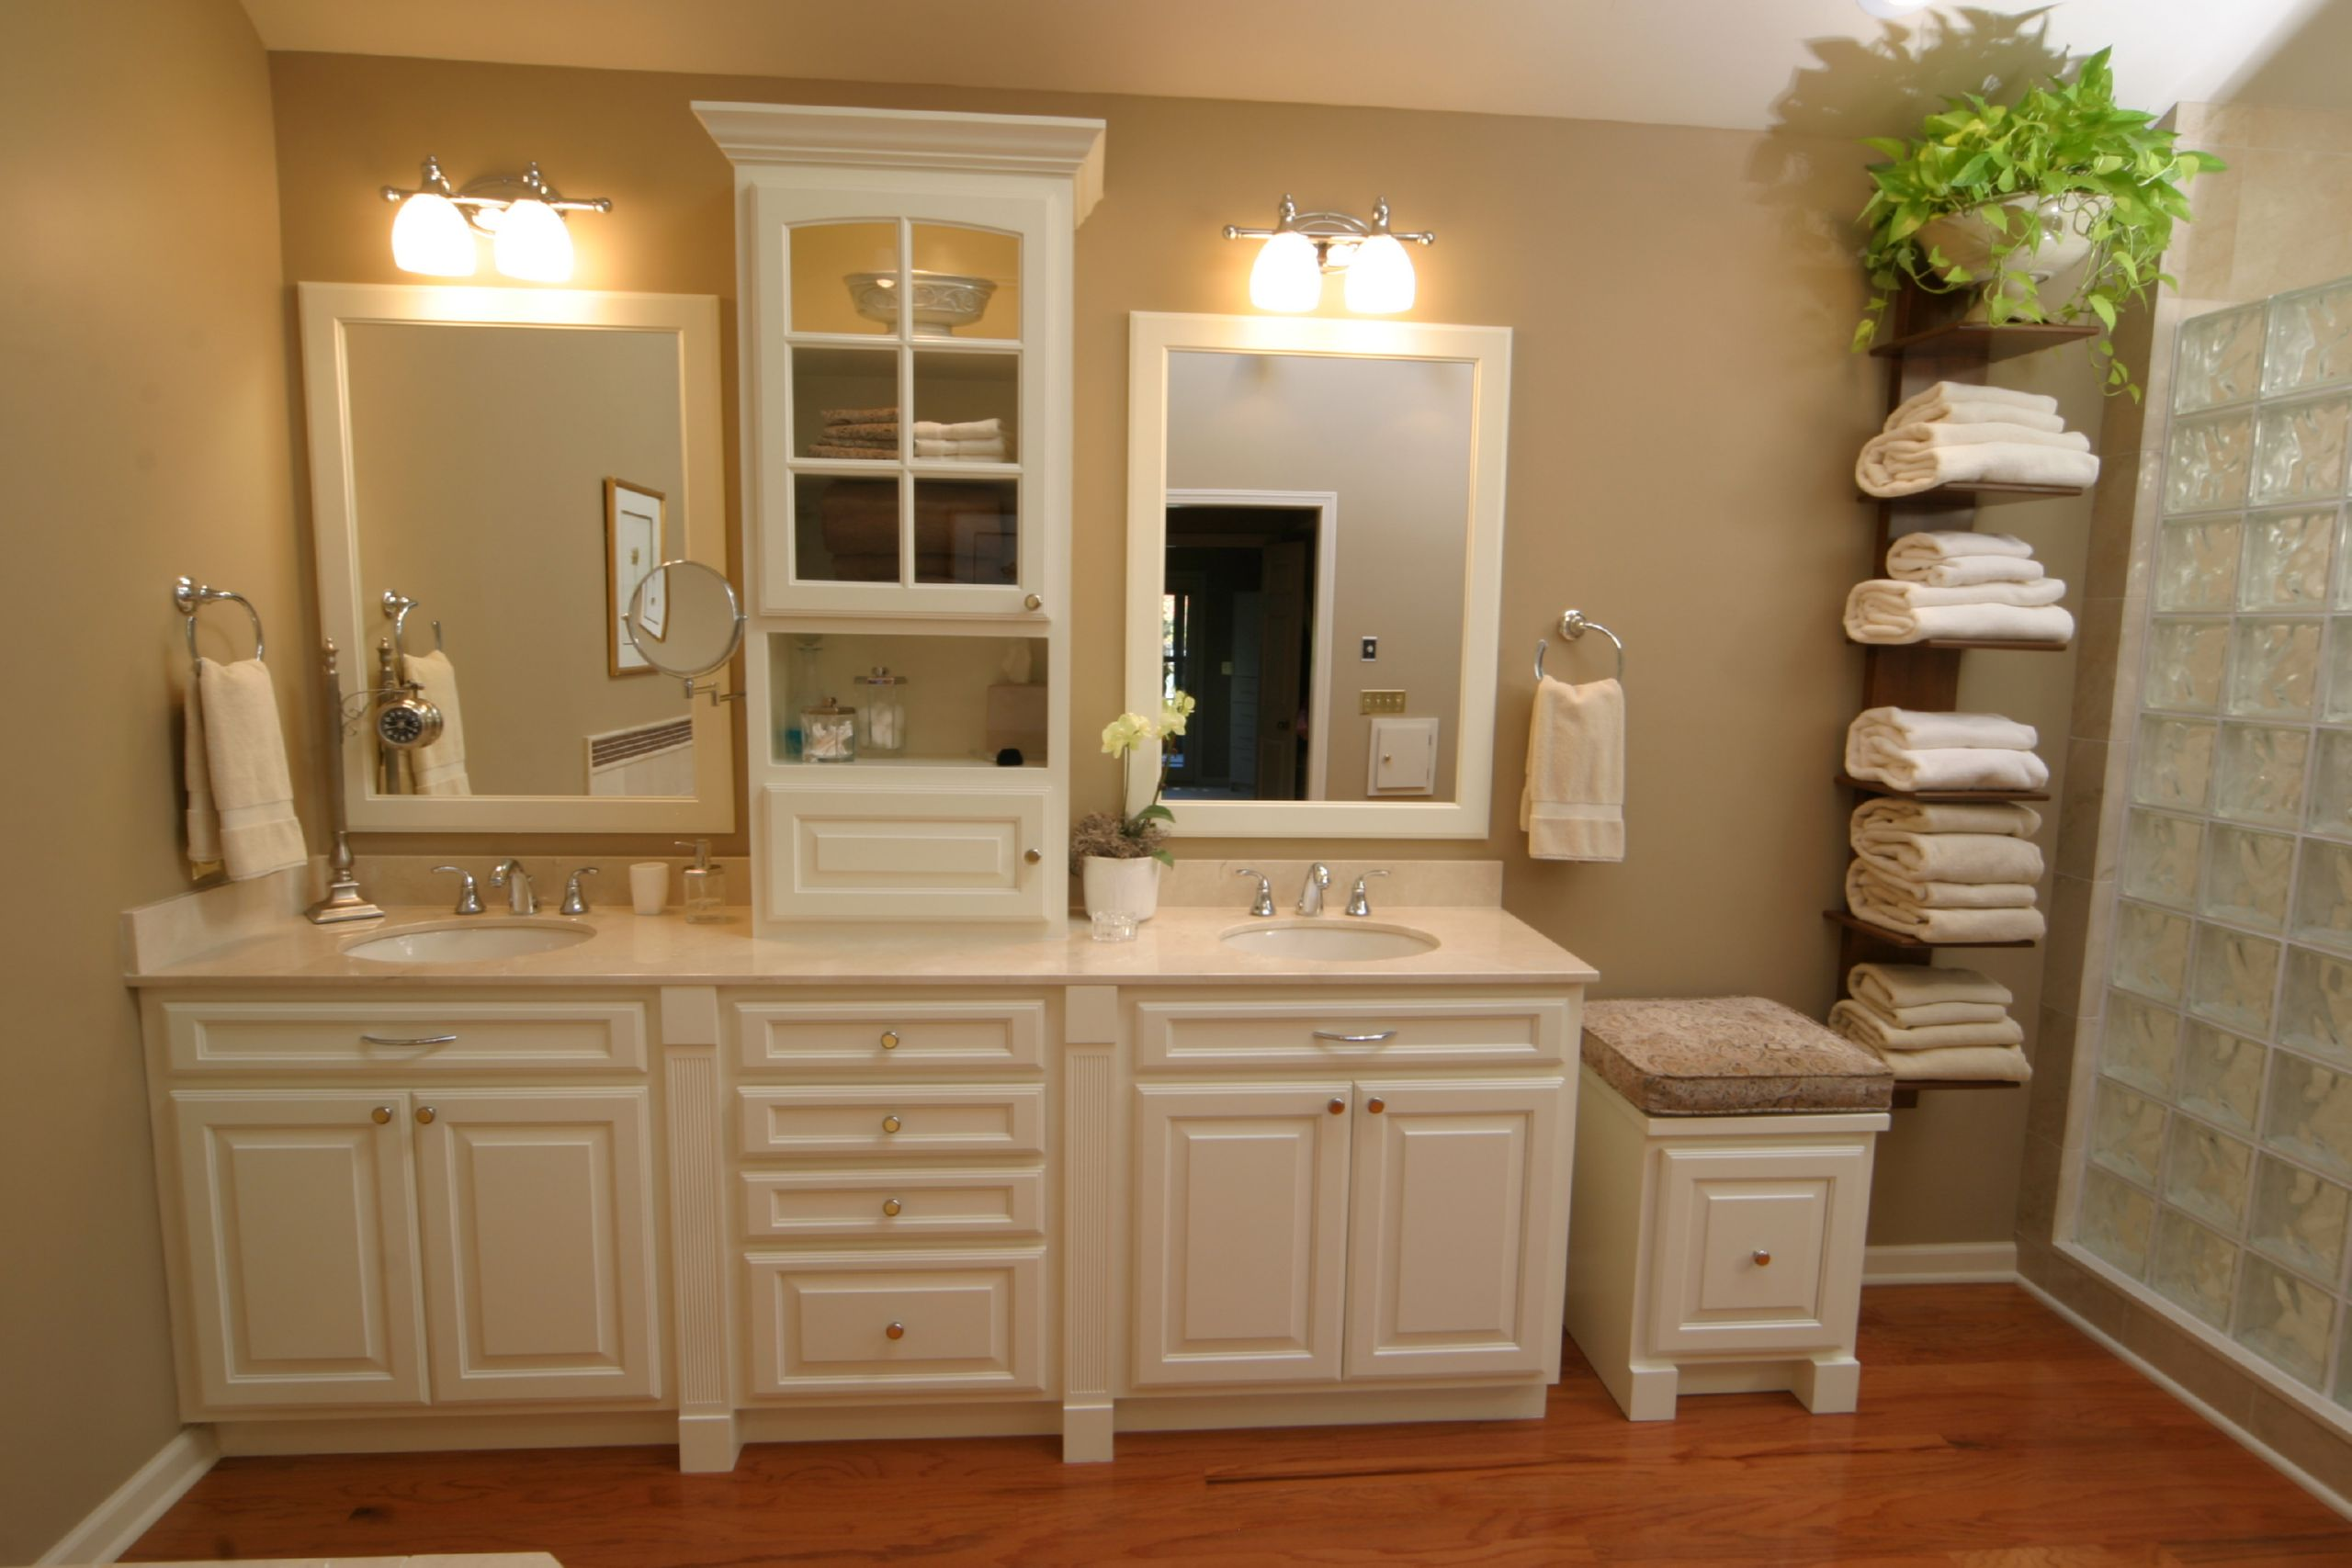 Ideas To Remodel Bathroom Bathroom Remodeling Tips Ideas To Remodel